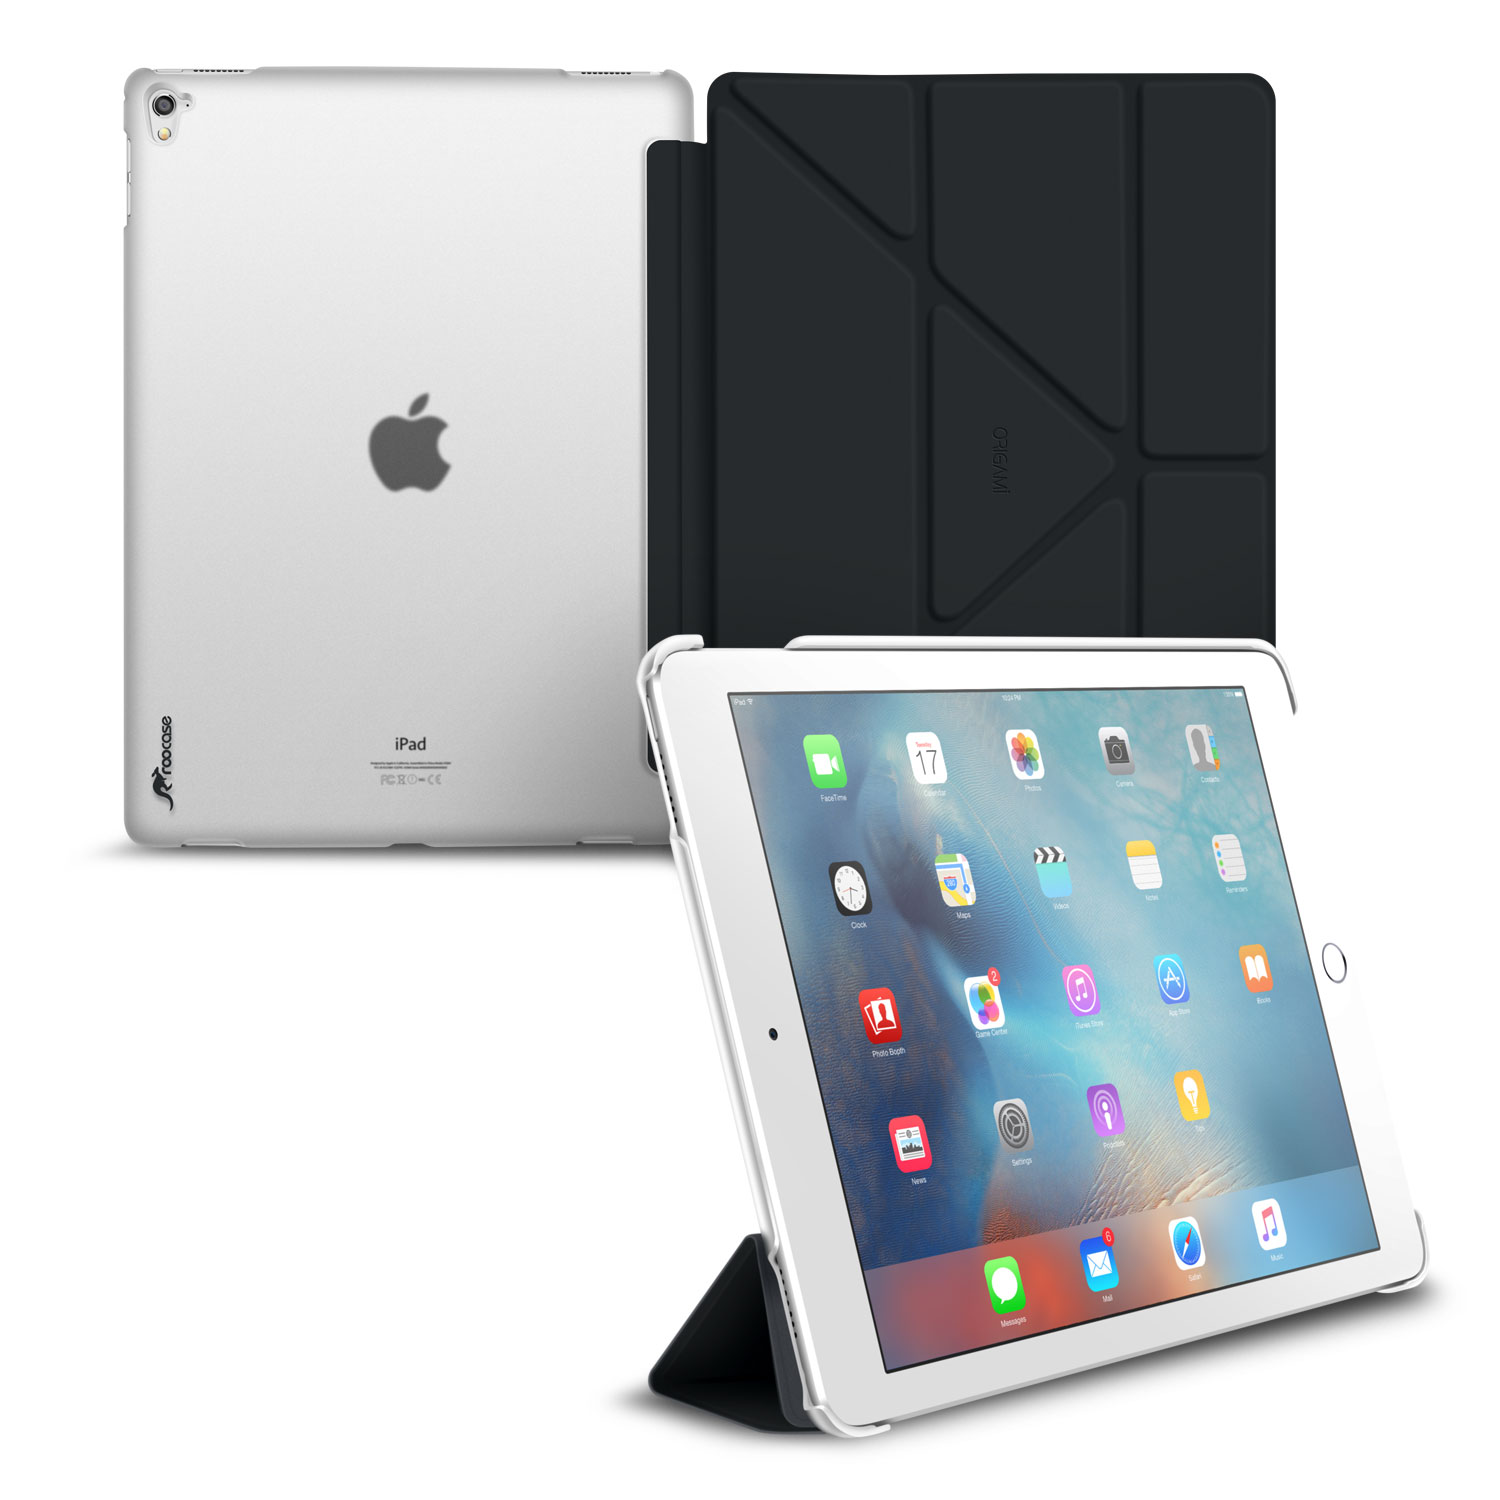 iPad Pro 9.7 Case, Apple Folio roocase Origami Slim Shell Frost Back Case Smart Cover with Auto Sleep/Wake Feature for